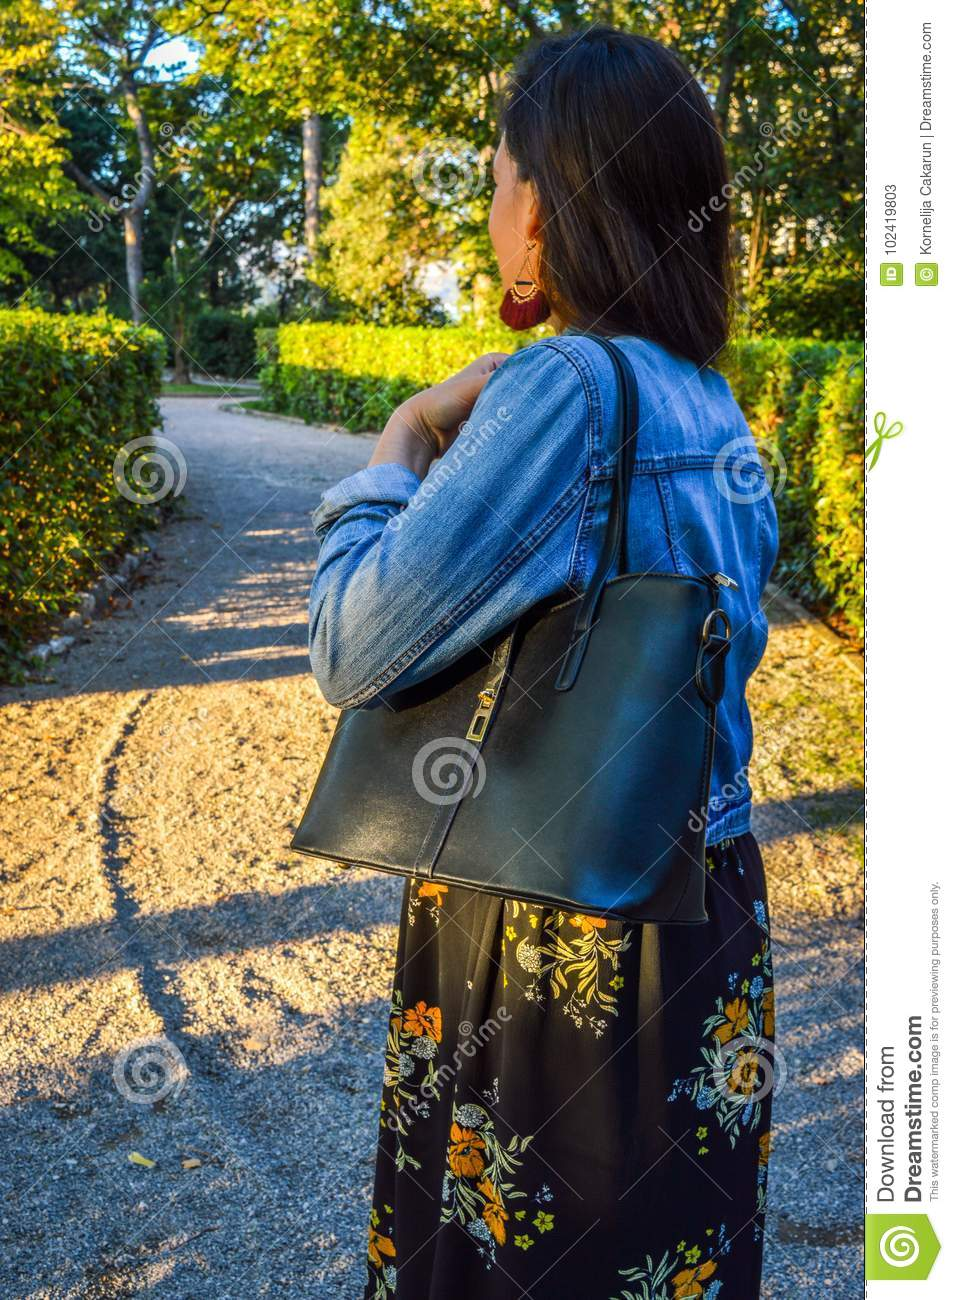 A young woman in a park, wearing a floral dress and a denim jacket, holding a black handbag